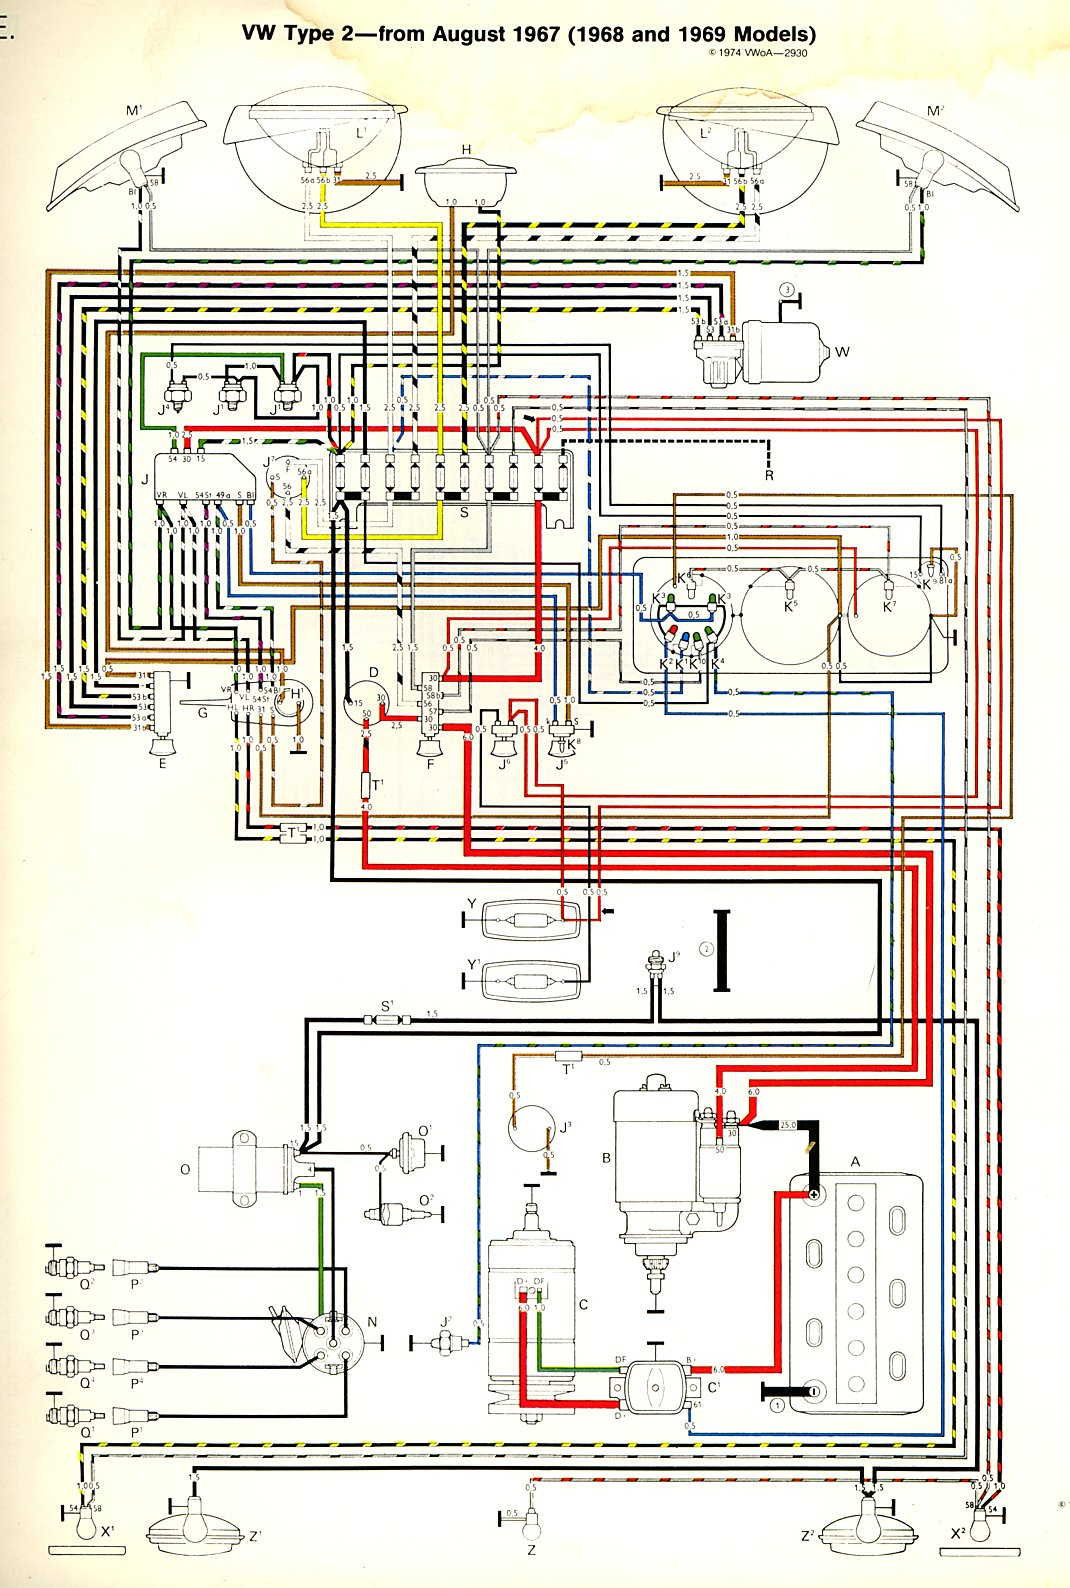 baybus_6869a 1968 69 bus wiring diagram thegoldenbug com 1968 vw beetle wiring diagram at bayanpartner.co